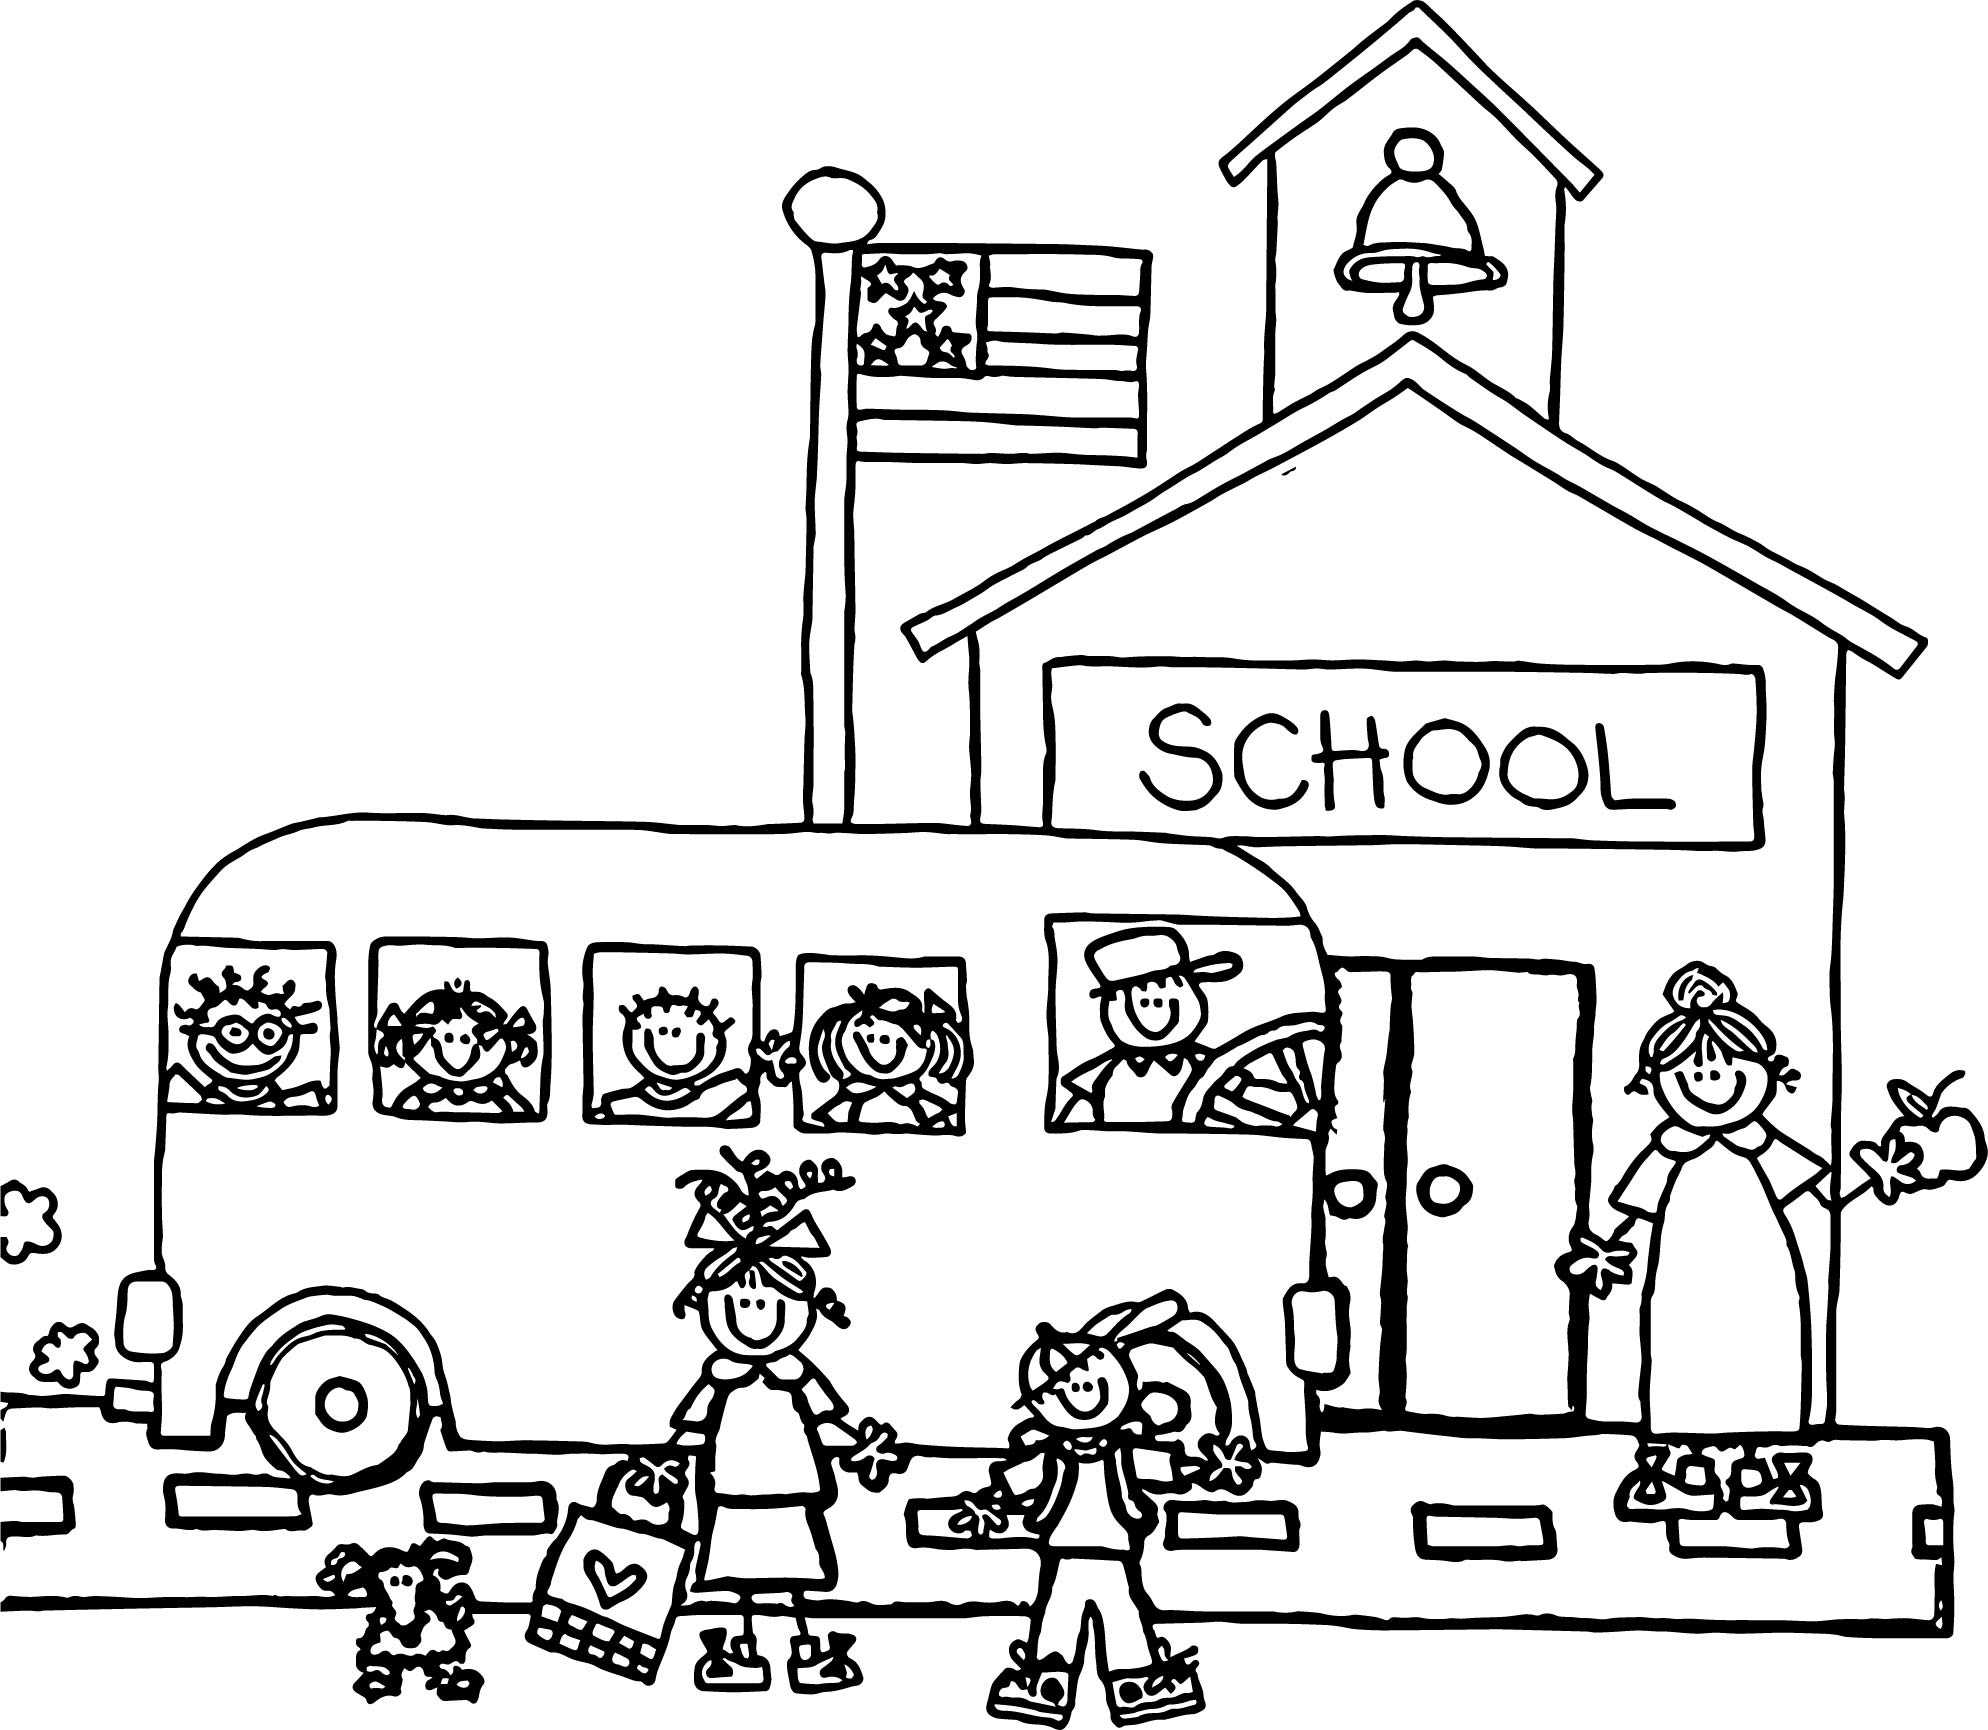 kindergarten coloring pages school - photo#42